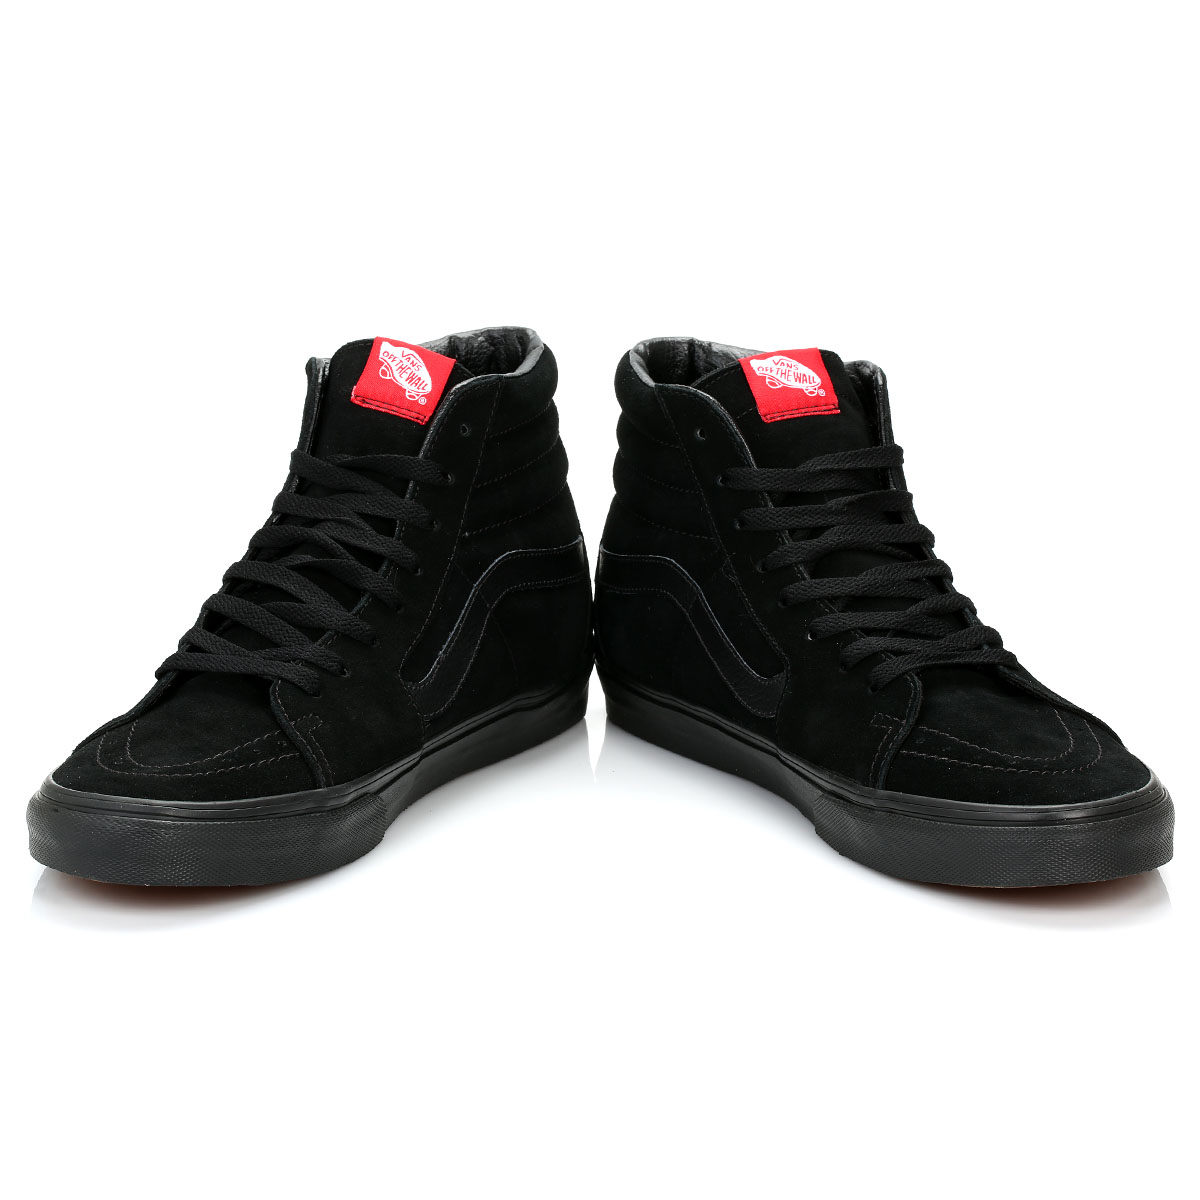 black high top vans